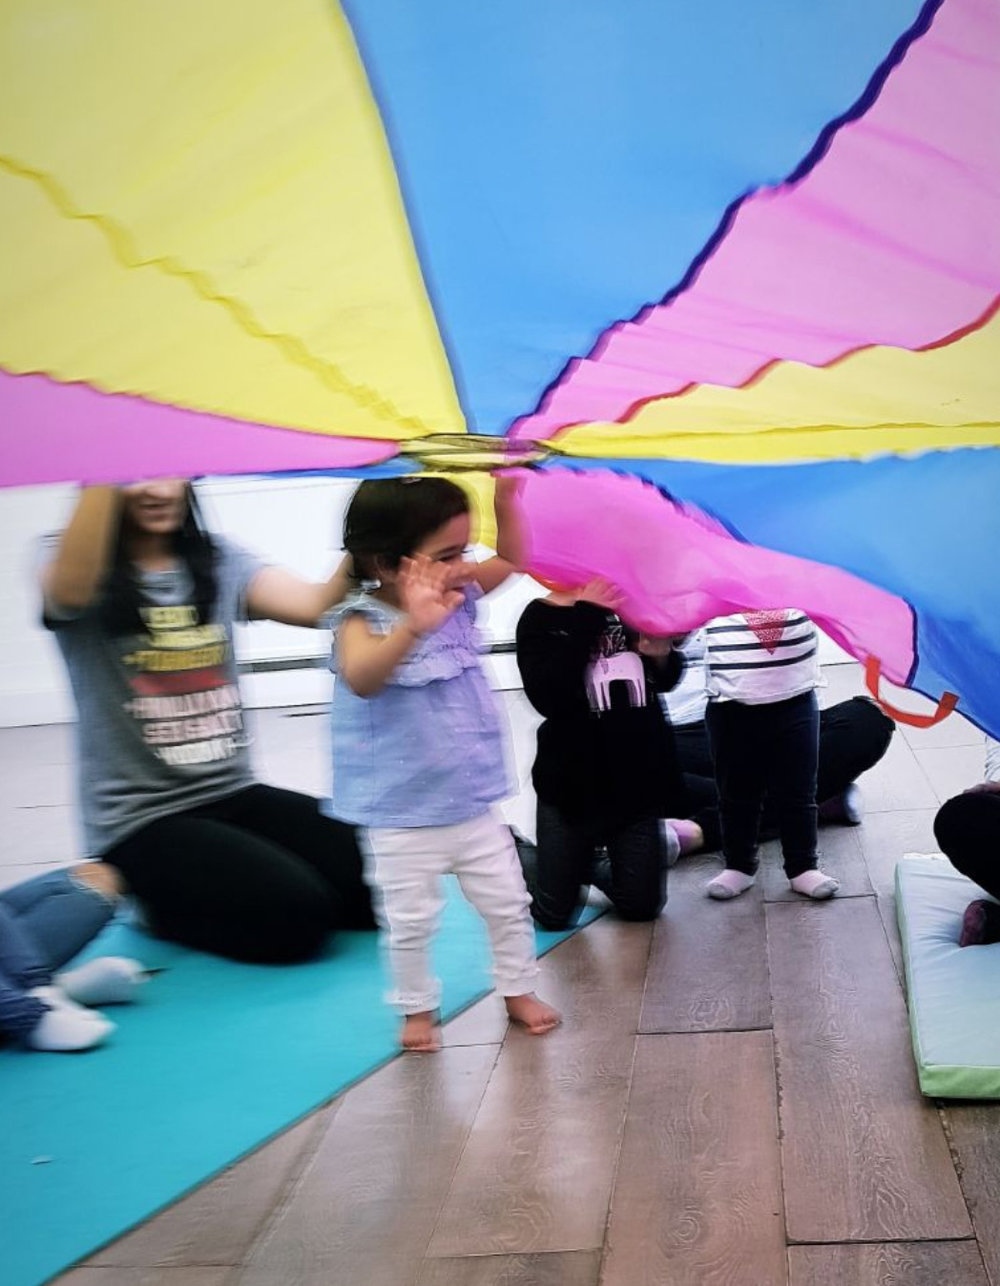 Live Music and Rhymes - This class offers a stimulating environment for your toddler to explore live music sounds and baby sign language. Also, this class is a change for your child to interact with other babies. Research shows that music helps infants exposed to a rich acoustic environment by physically boosting brain development.Offered:Fridays at 15:15.Sign up:You can trial the class for £12.90 click here.Instructor:Rhianon/Oleg